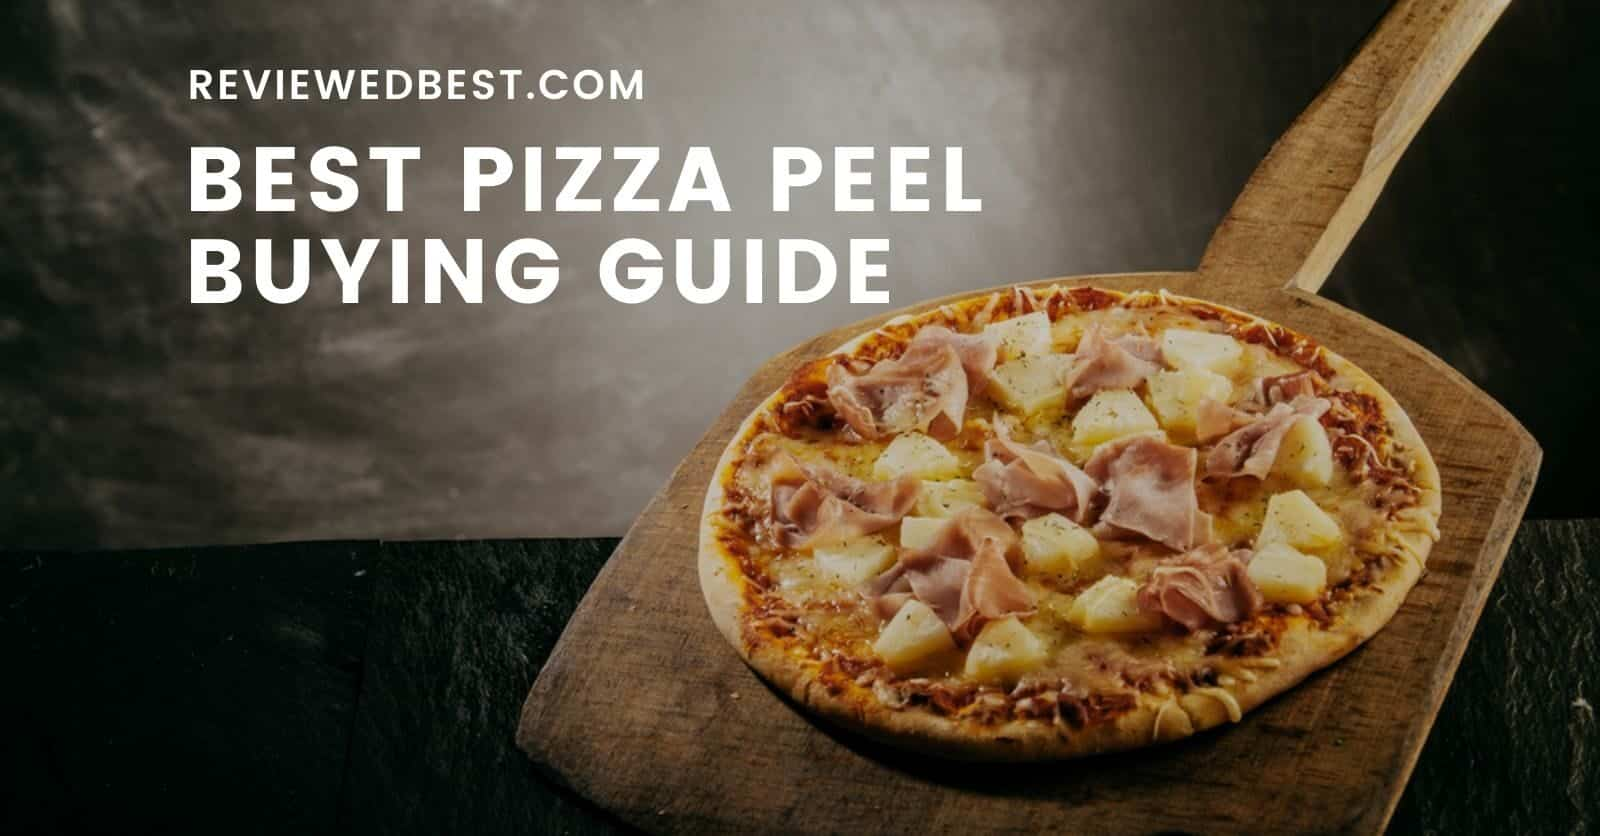 Best Pizza Peel Buying Guide - reviewedbest.com